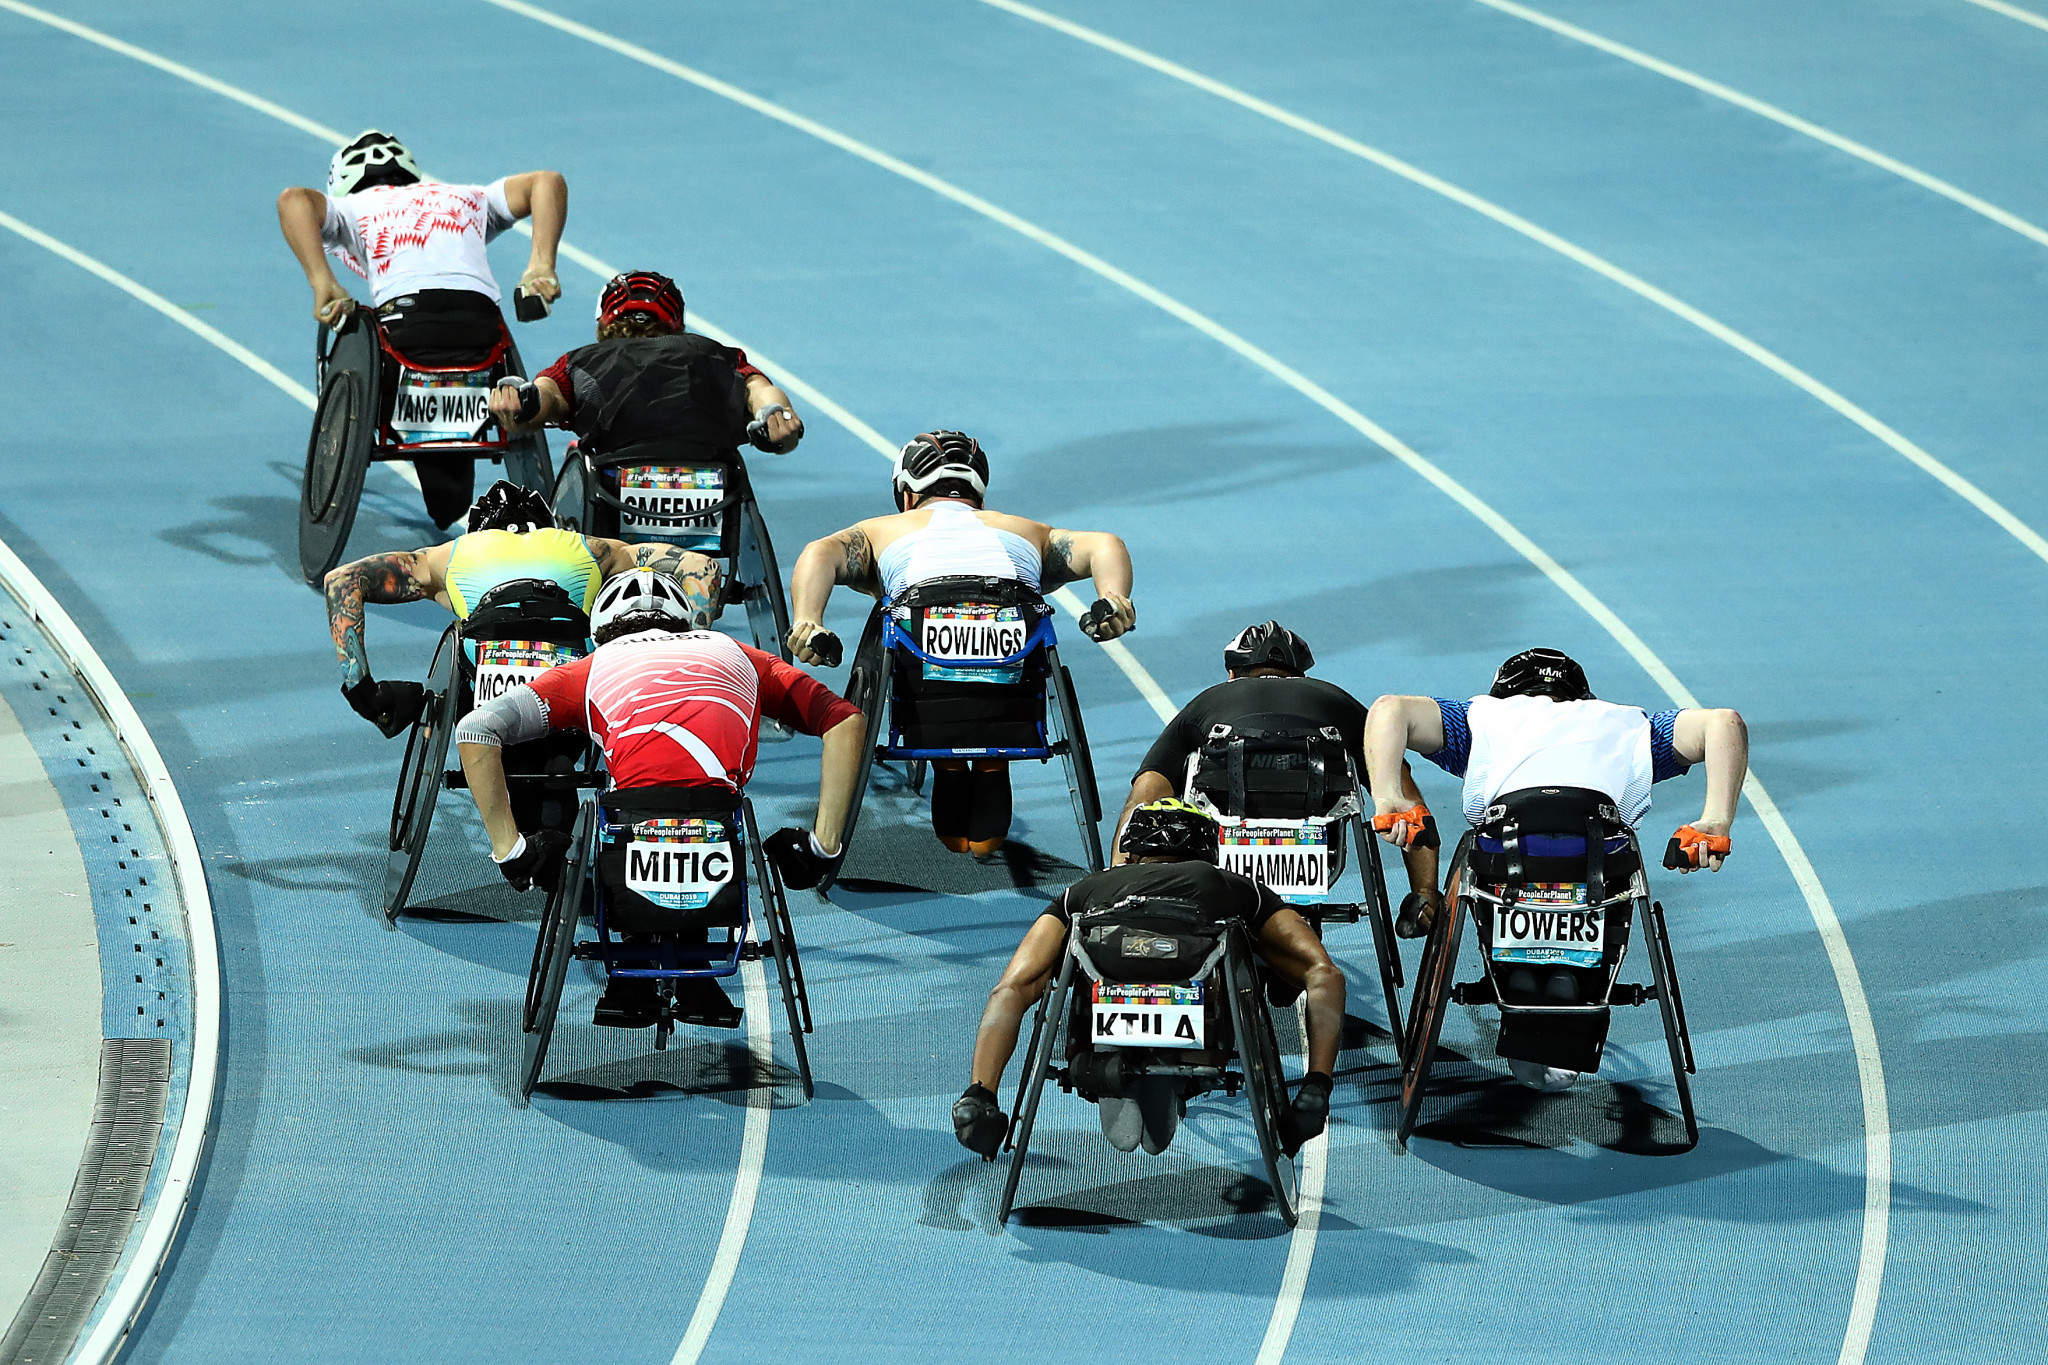 Last remaining World Para Athletics Grand Prix event in 2020 postponed